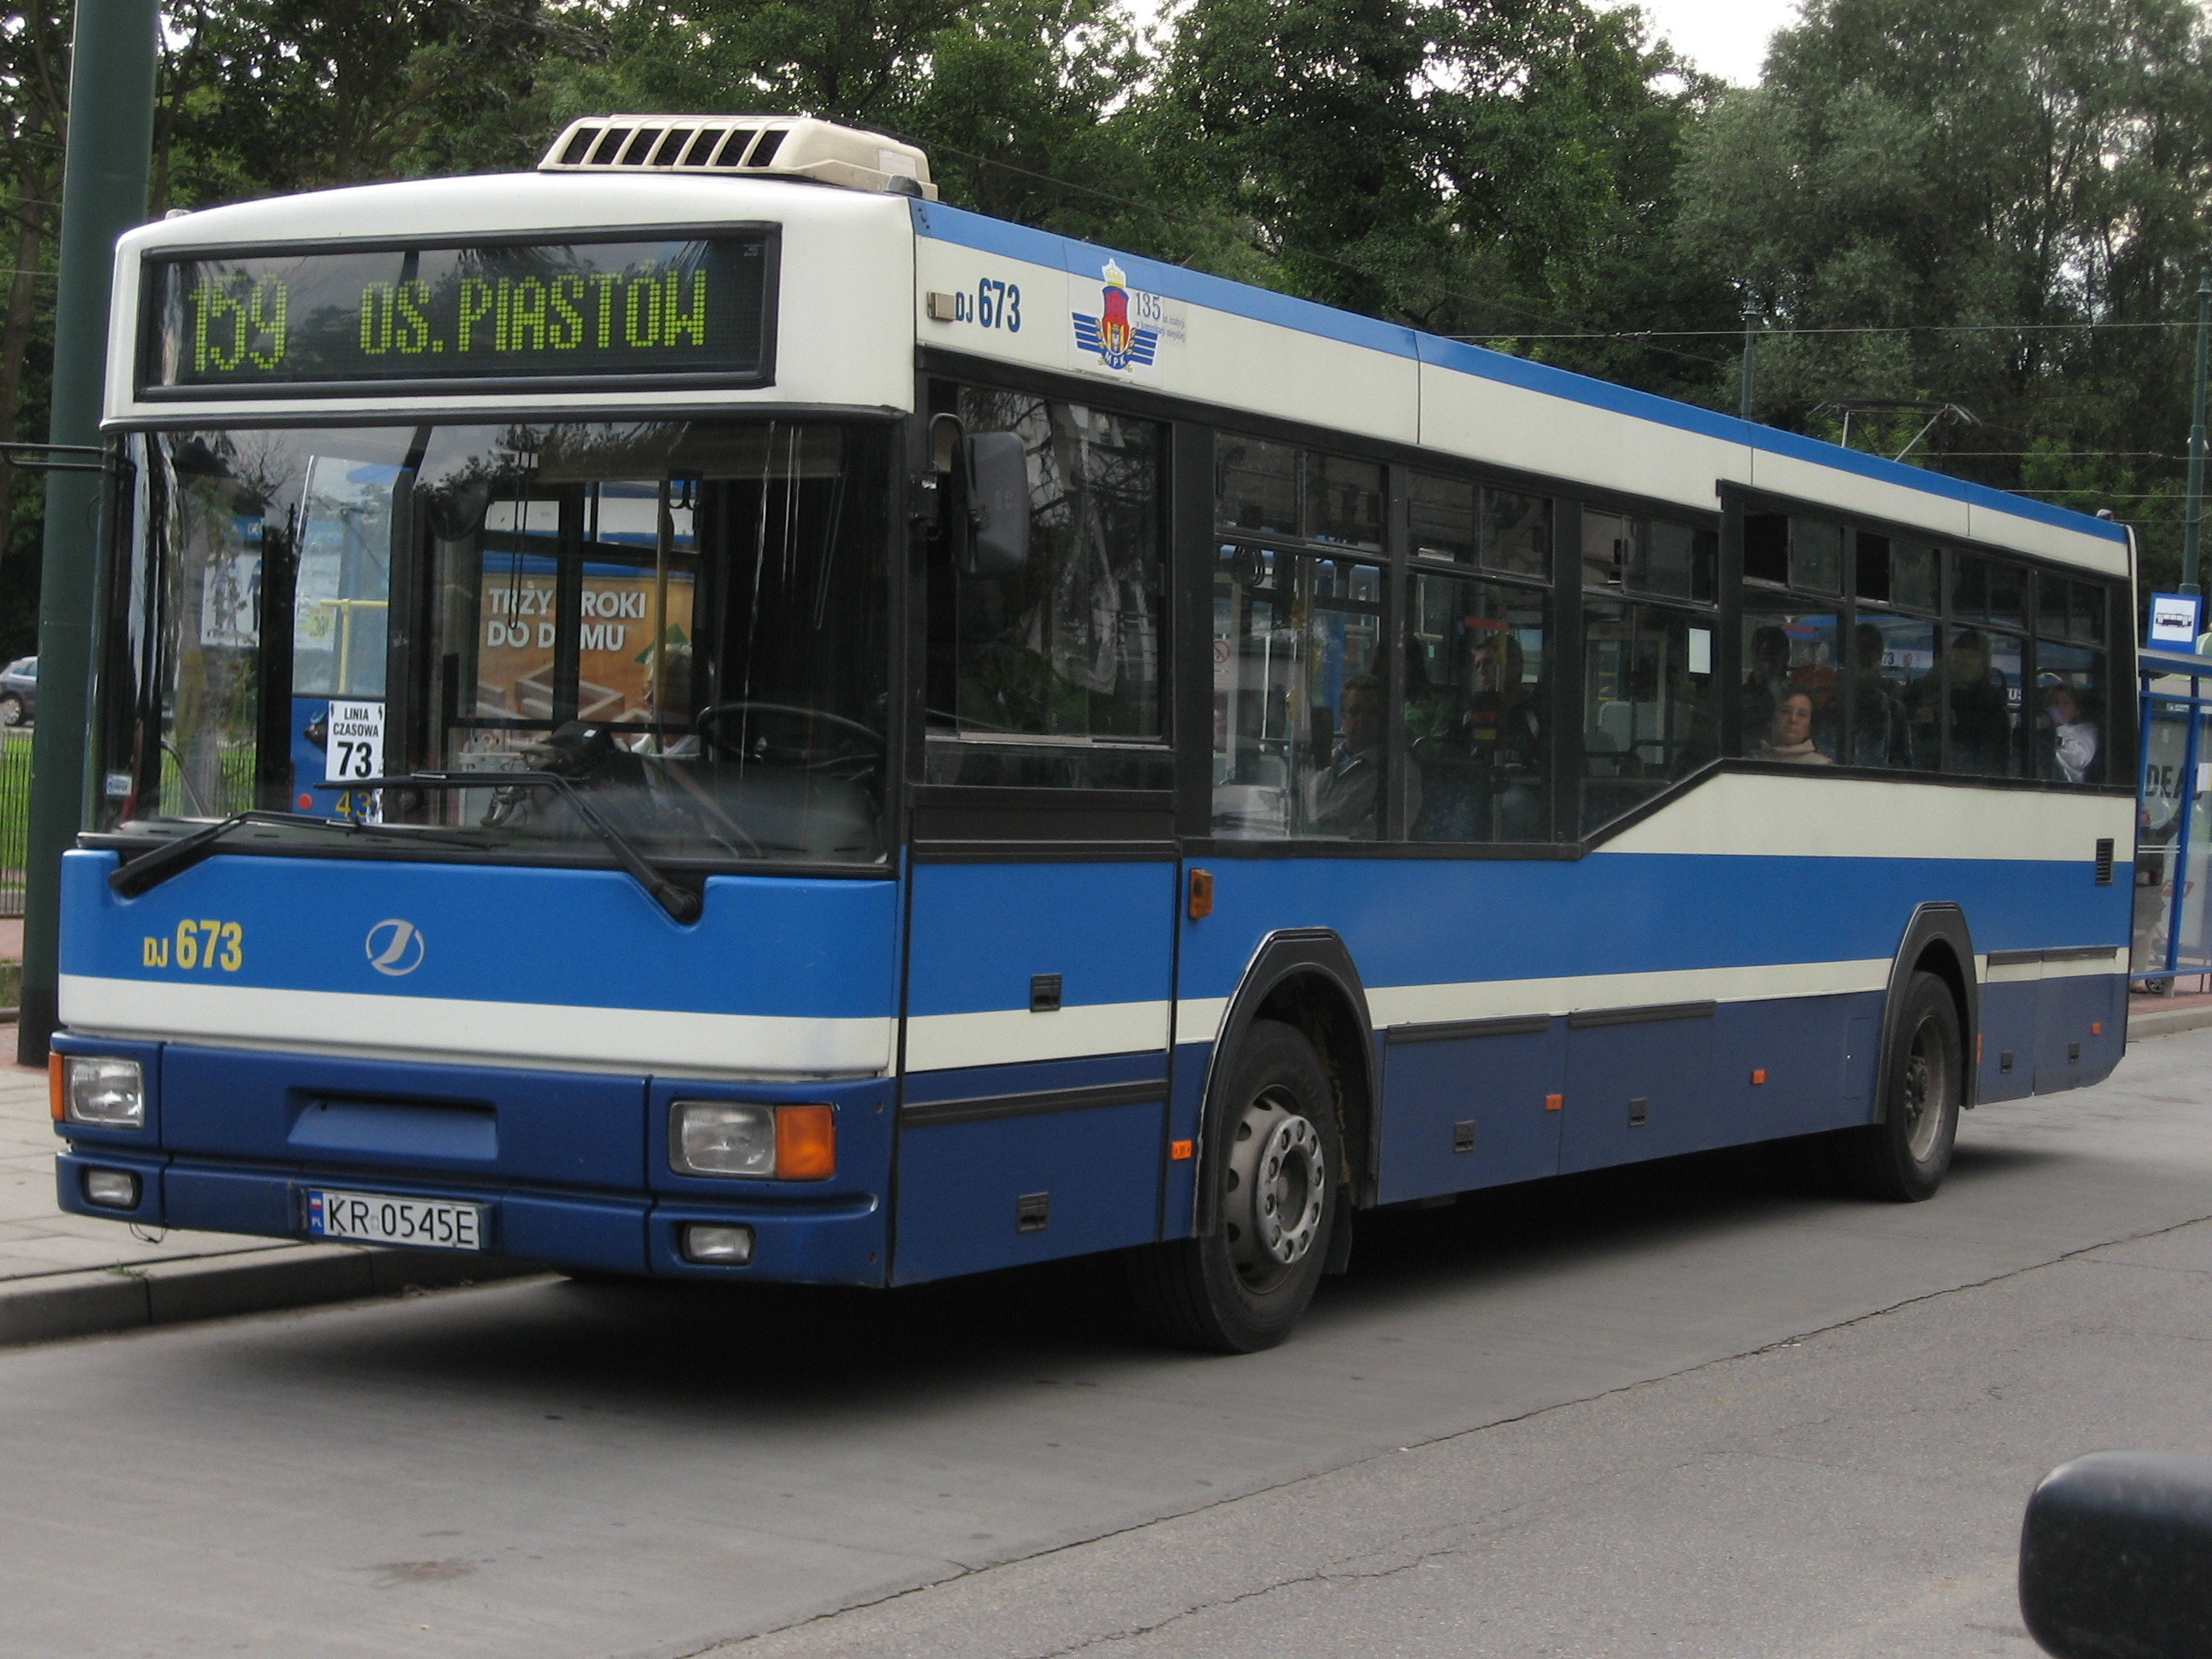 File:Jelcz bus of MPK Kraków at a bus stop on Irgców street (1).jpg ...